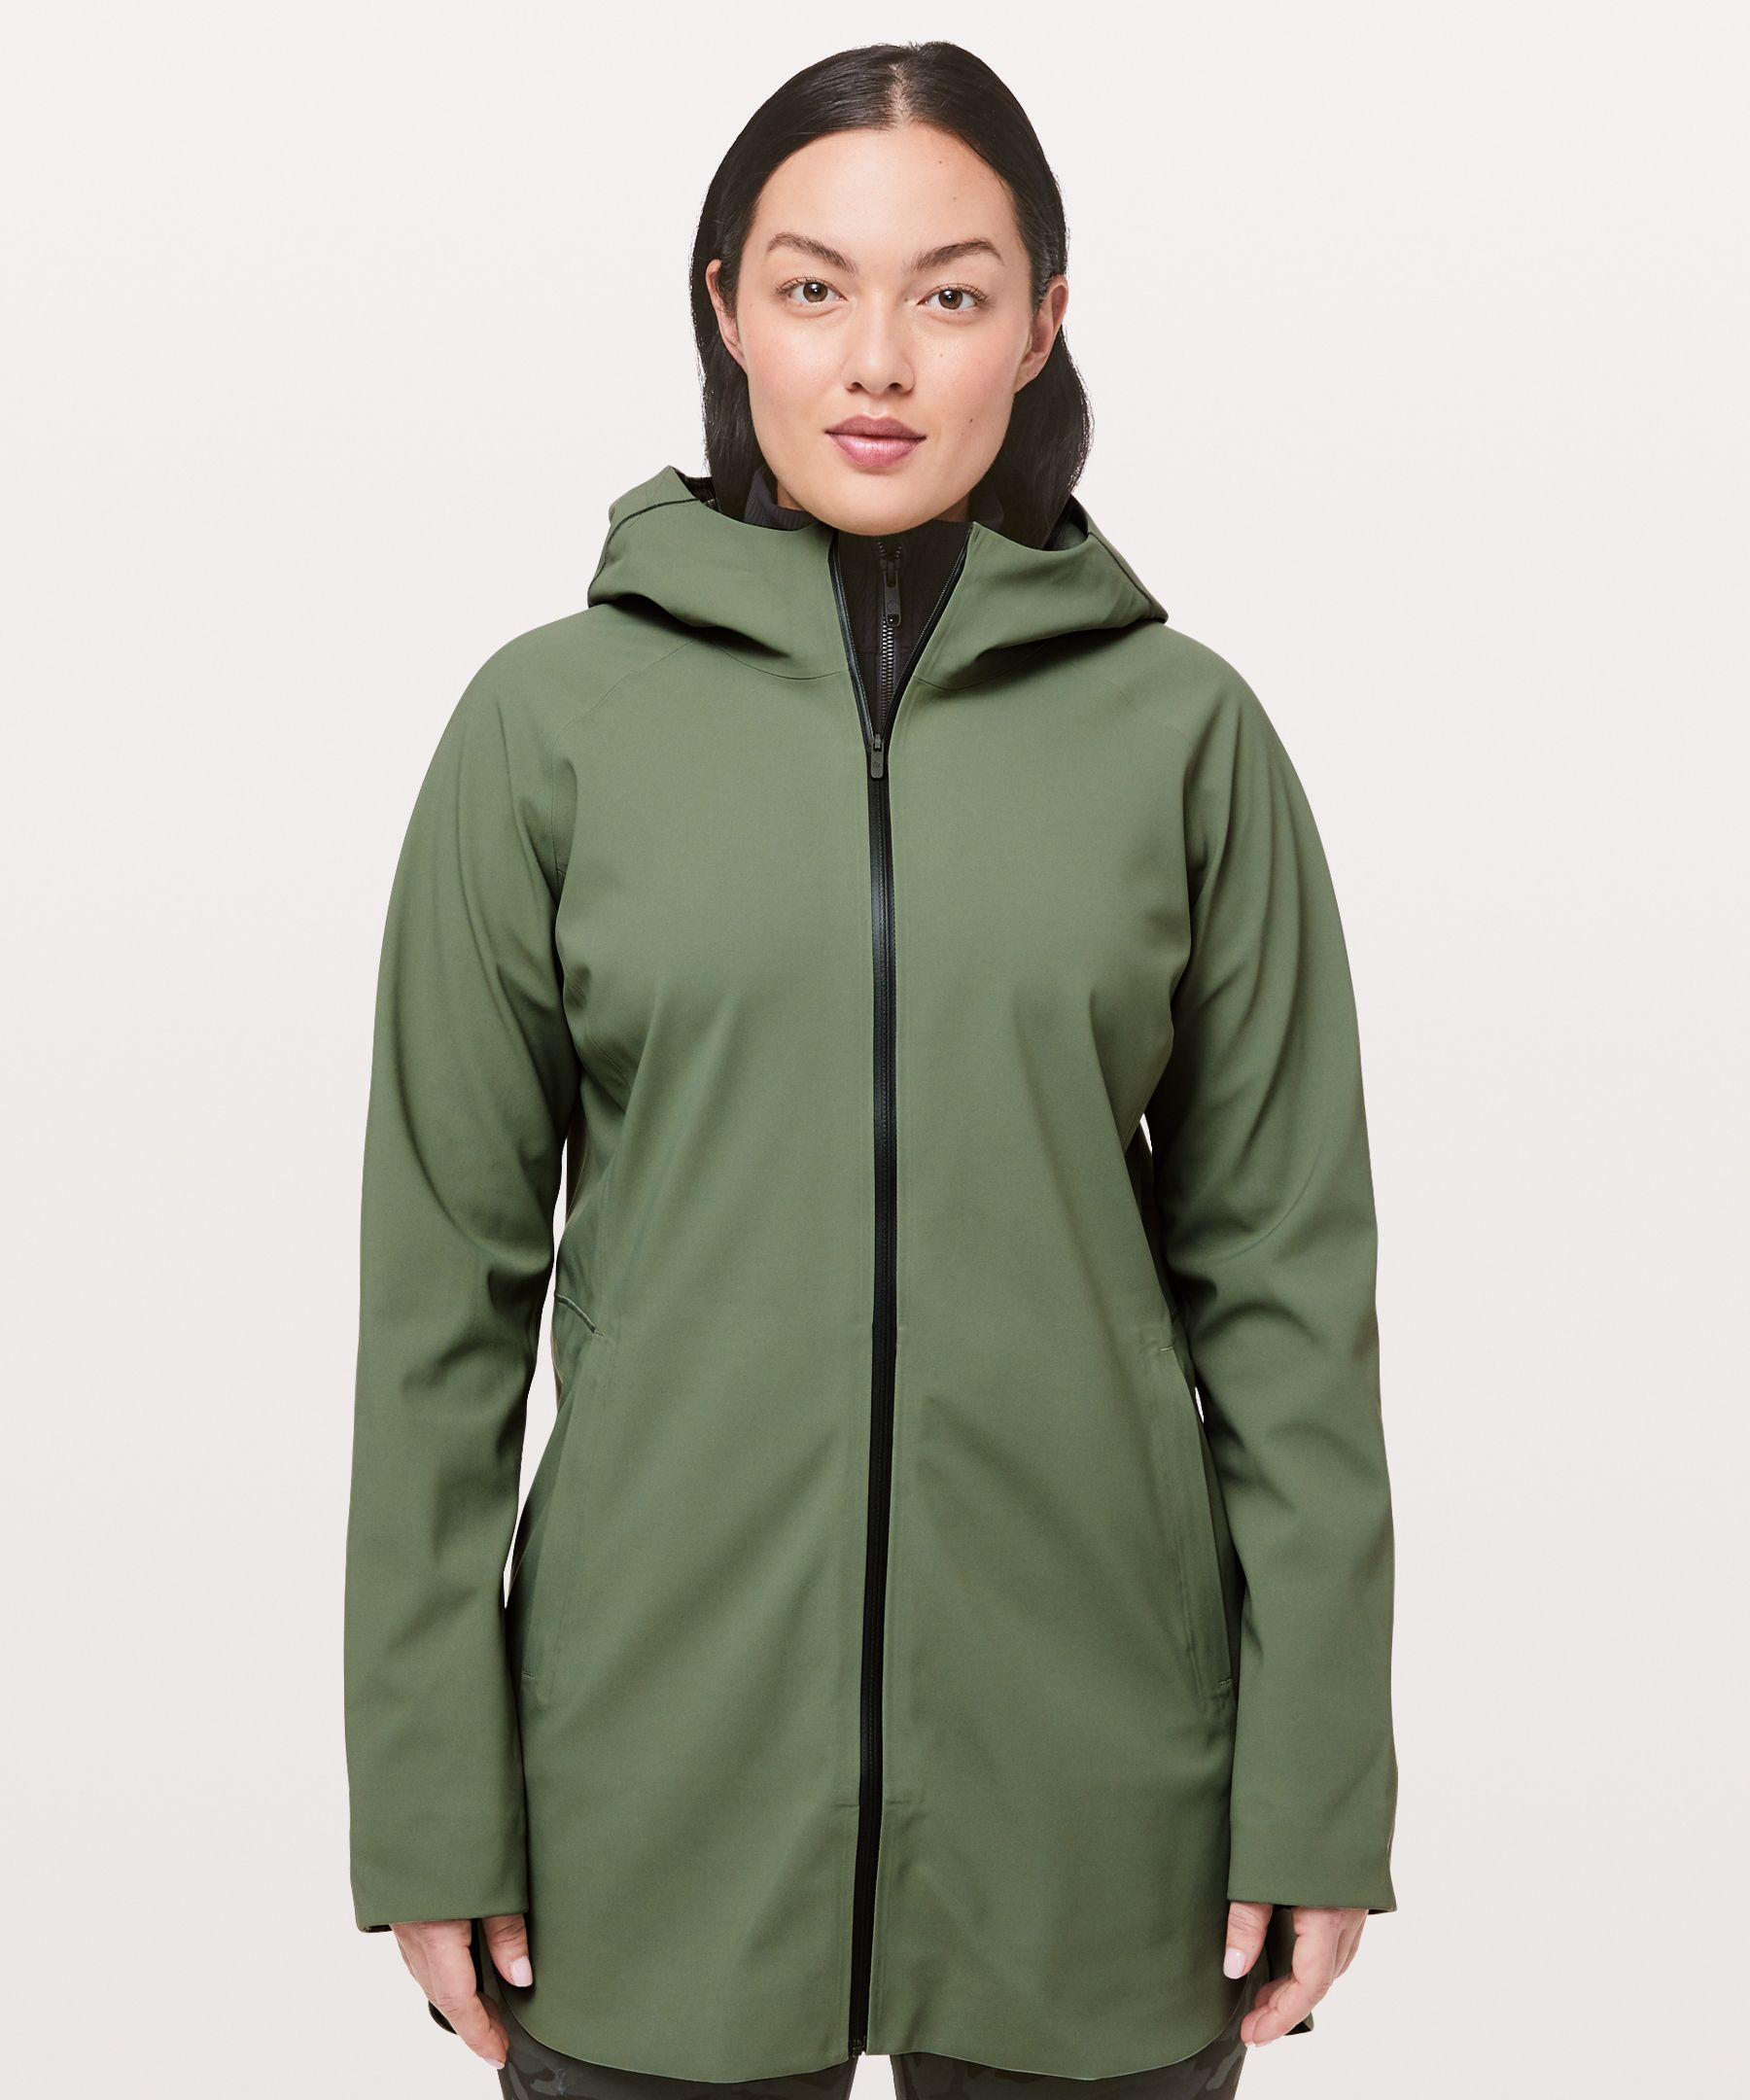 Lululemon Glyde Along Softshell In Green Twill